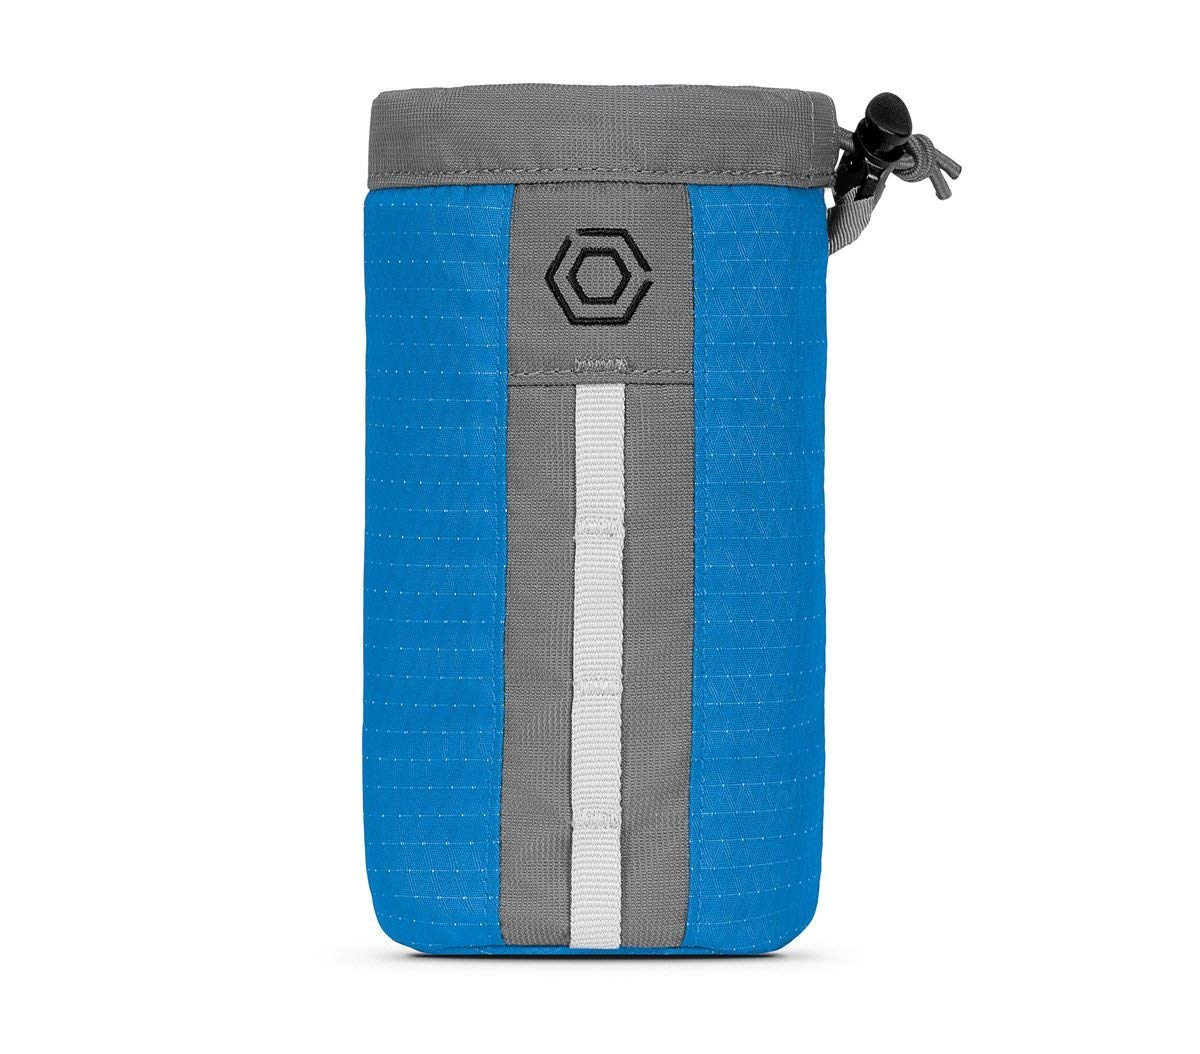 Mission Critical | S.02 Insulated Bottle Holder | Baby Gear for Dads | Designed to Work with Mission Critical Baby Carrier | Ocean Blue by Mission Critical